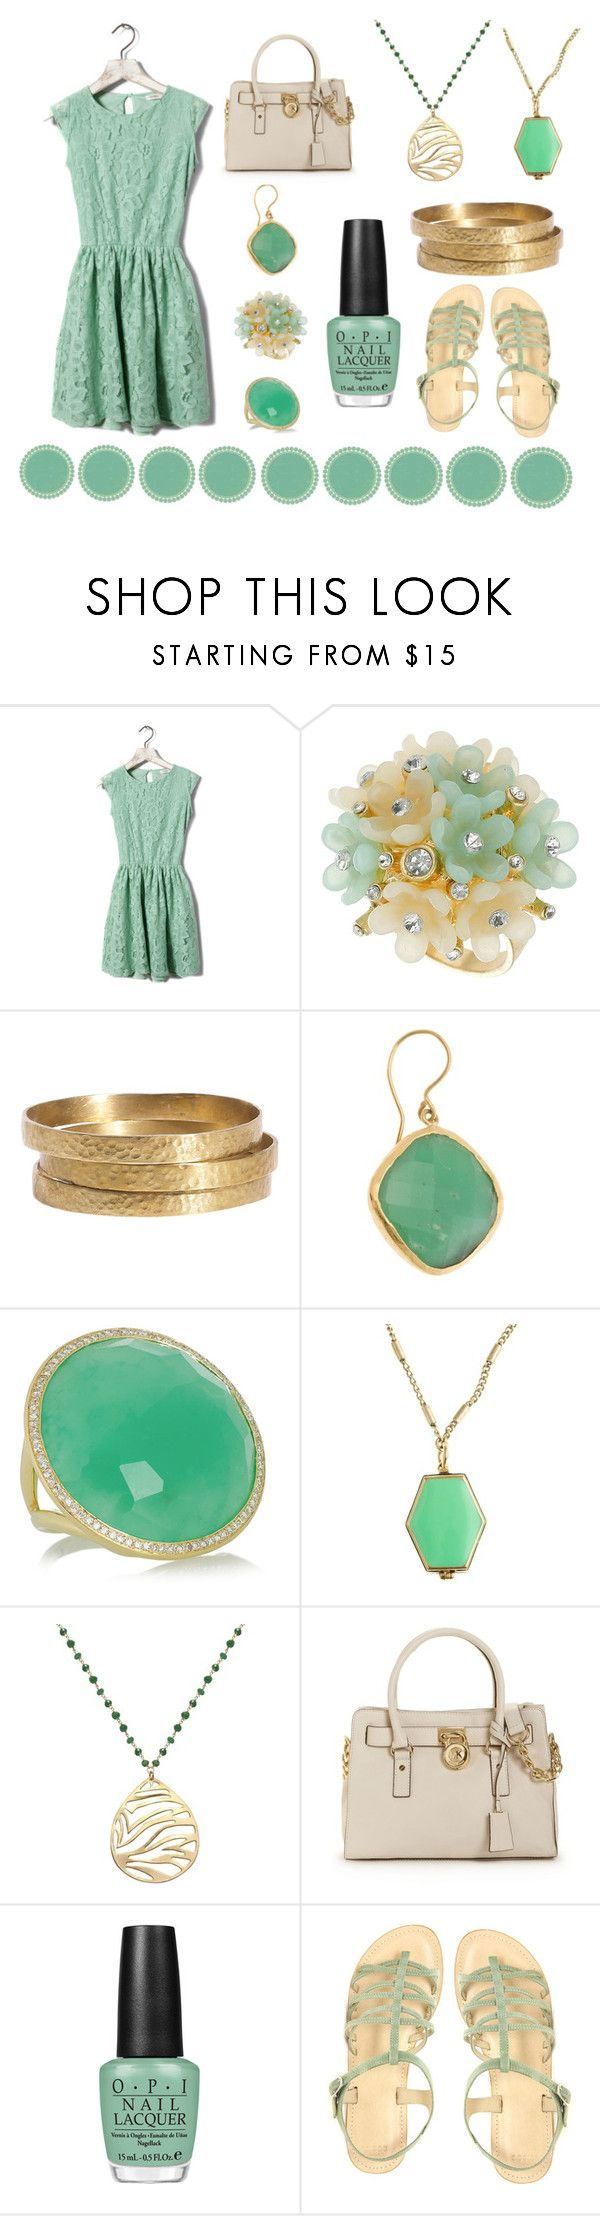 """""""Minty green (:"""" by jessw-1226 ❤ liked on Polyvore featuring Pull&Bear, Dorothy Perkins, Jigsaw, Ram, Ippolita, J.Crew, Lola James Jewelry, Michael Kors, OPI and ASOS"""